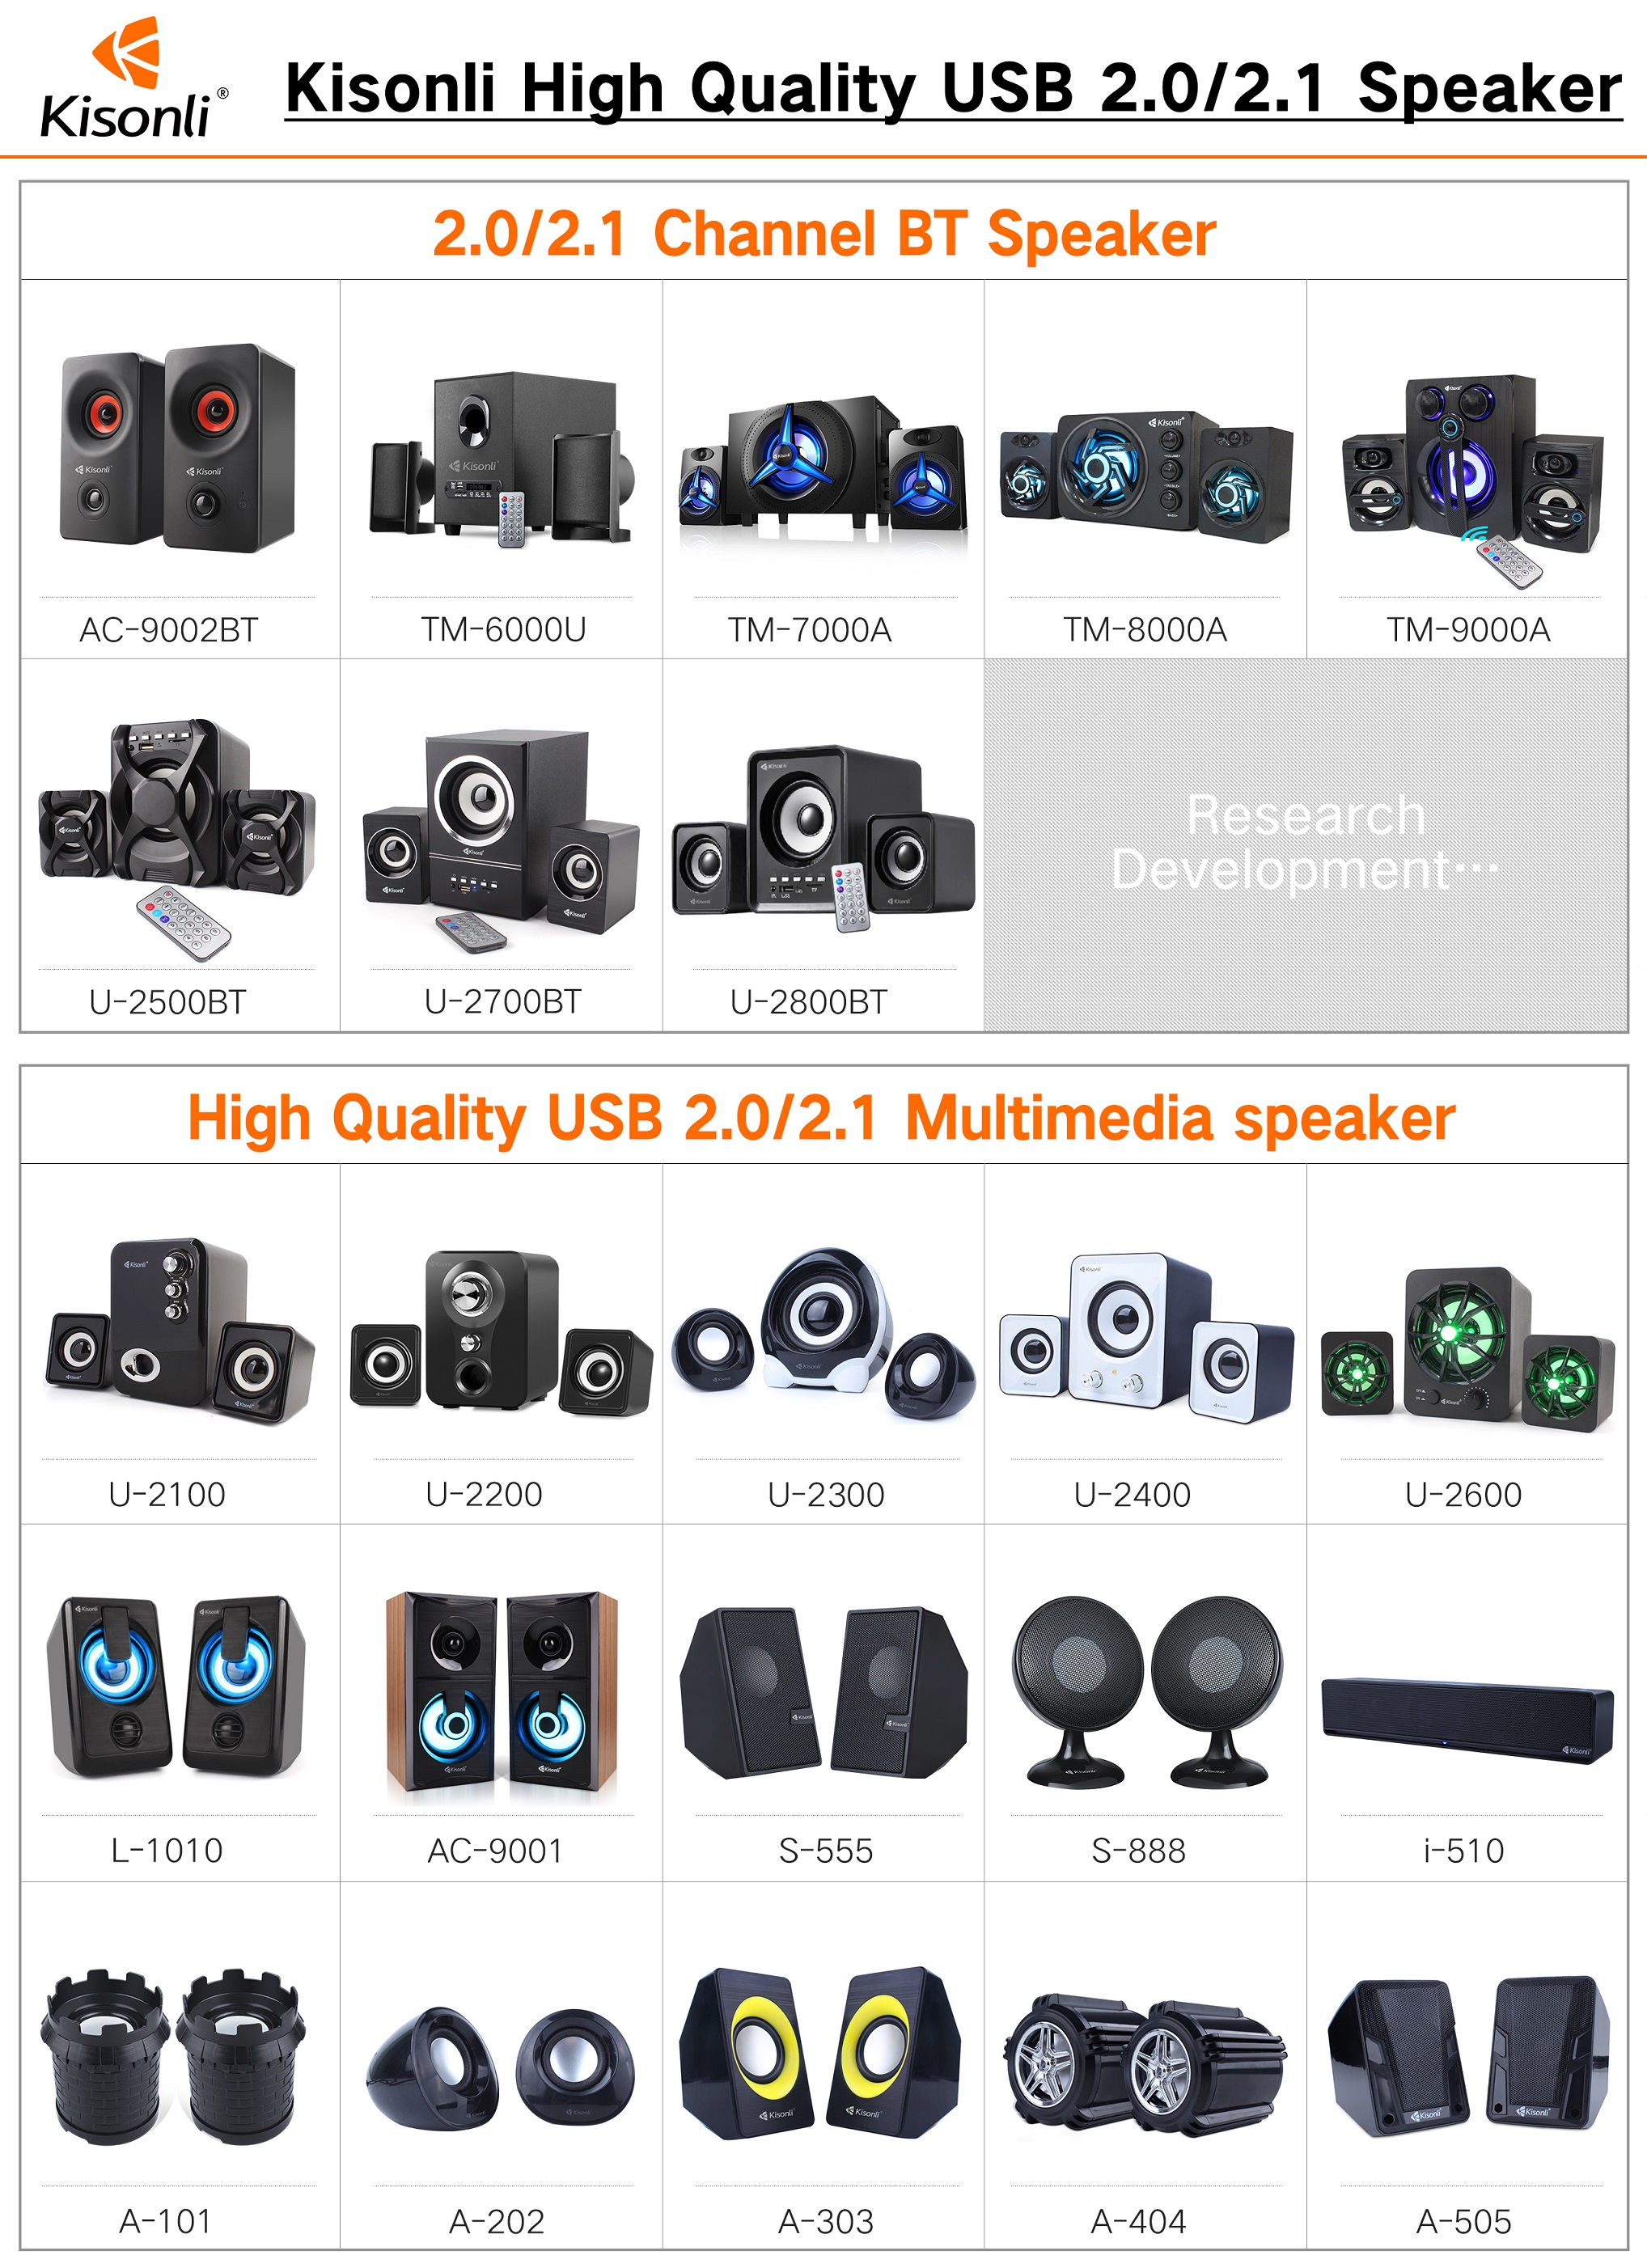 Grosir PC Kabel USB 2.0 & 3.5 Mm Antarmuka Home Theatre Speaker System untuk Amazon Supplier